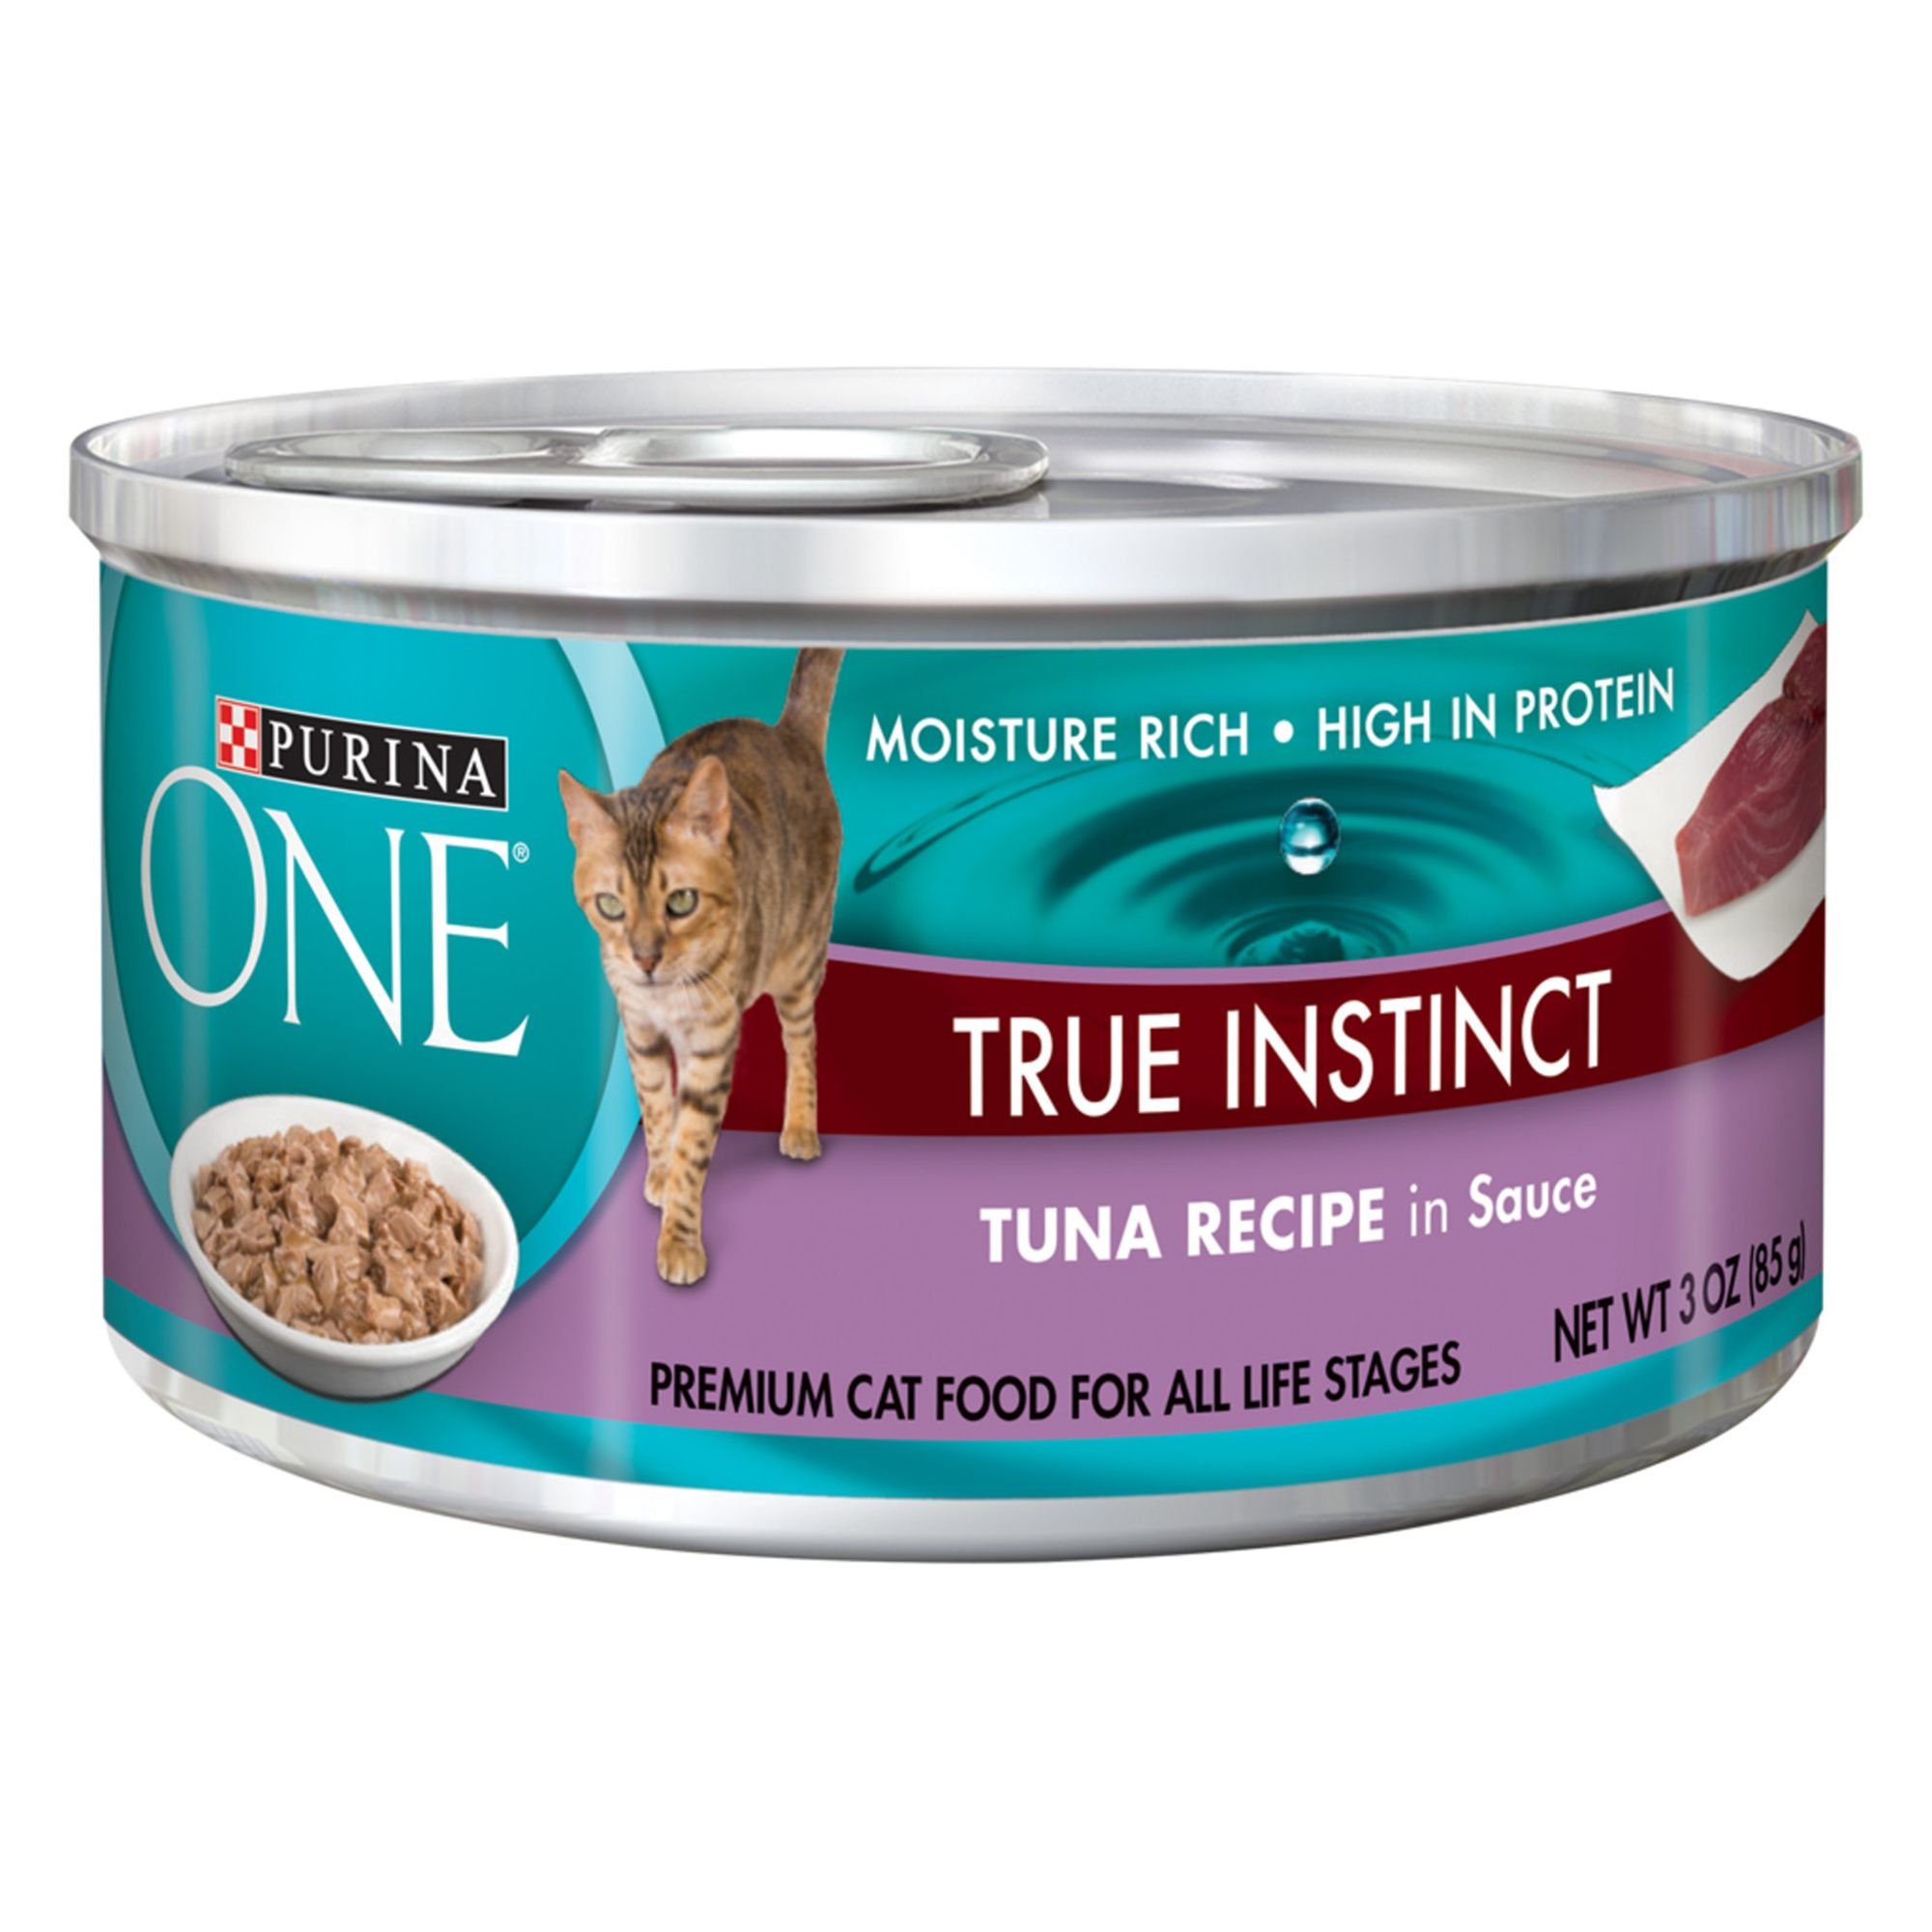 Purina ONE SmartBlend Cat Food Tuna size 3 Oz, ash